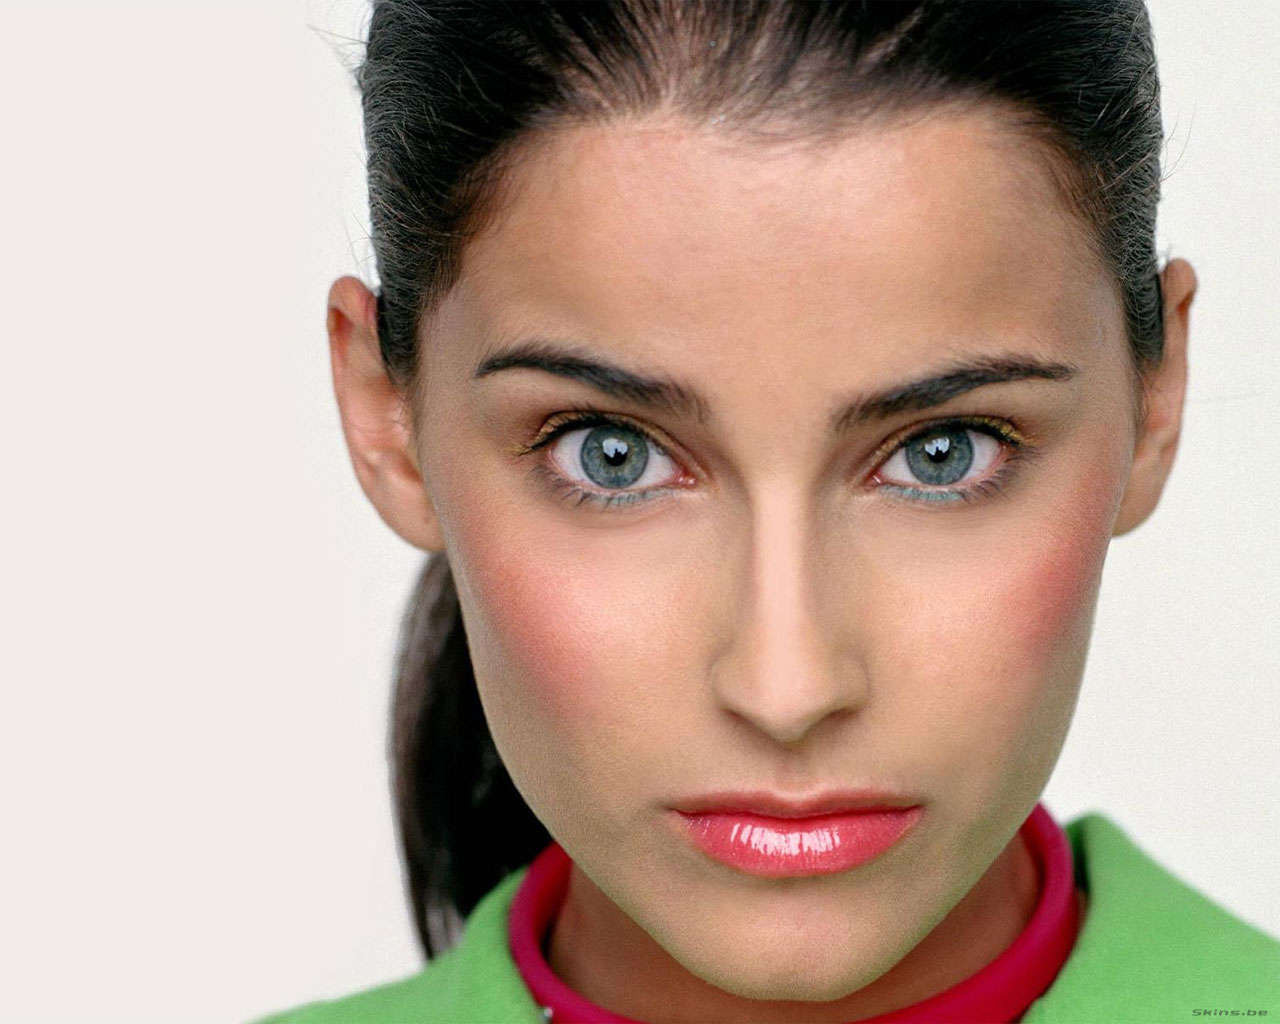 Nelly-Furtado-nelly-furtado-225423_1280_1024.jpg